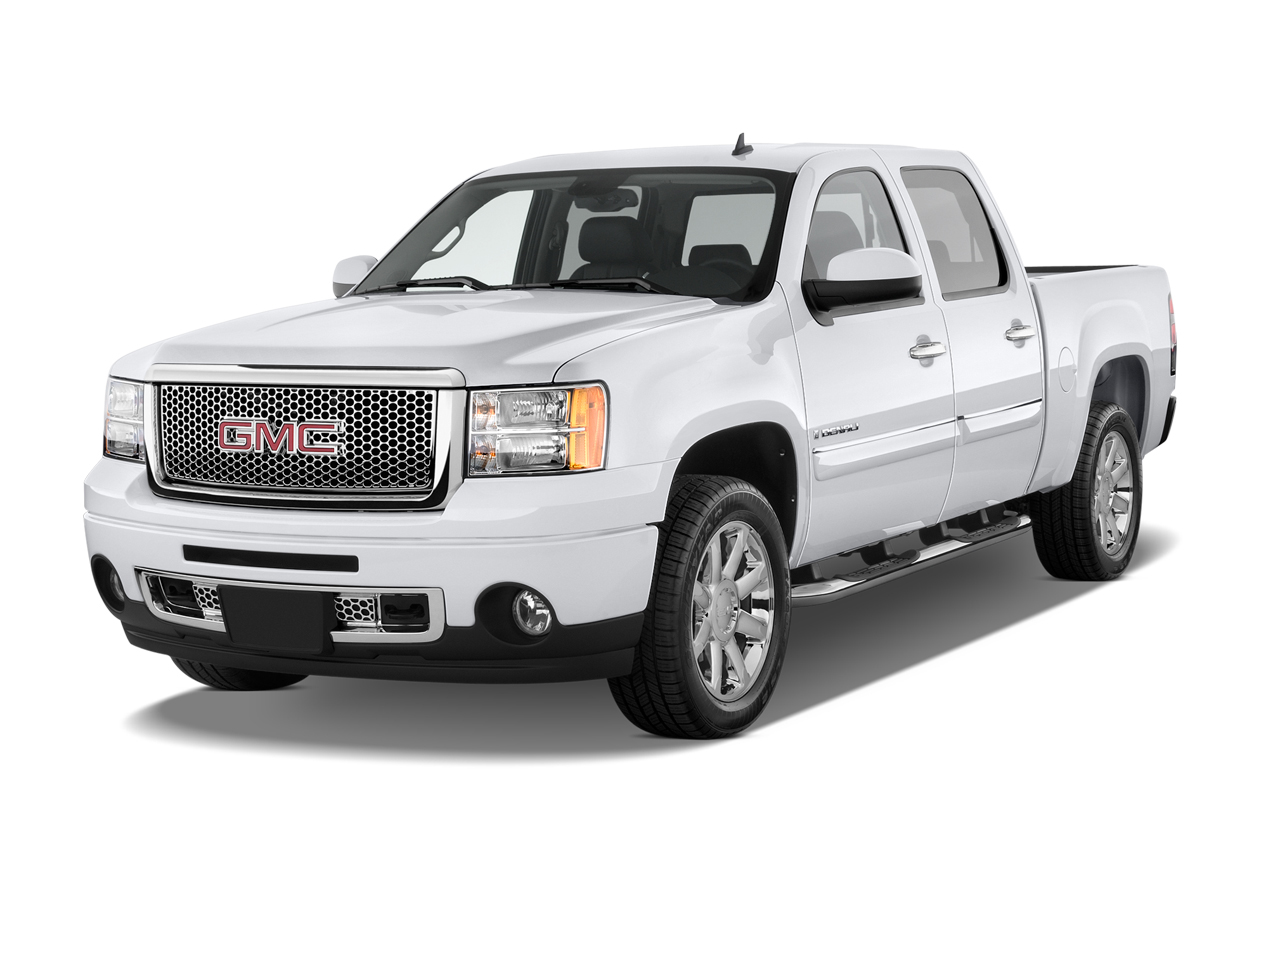 2012 gmc sierra 1500 gas mileage the car connection. Black Bedroom Furniture Sets. Home Design Ideas